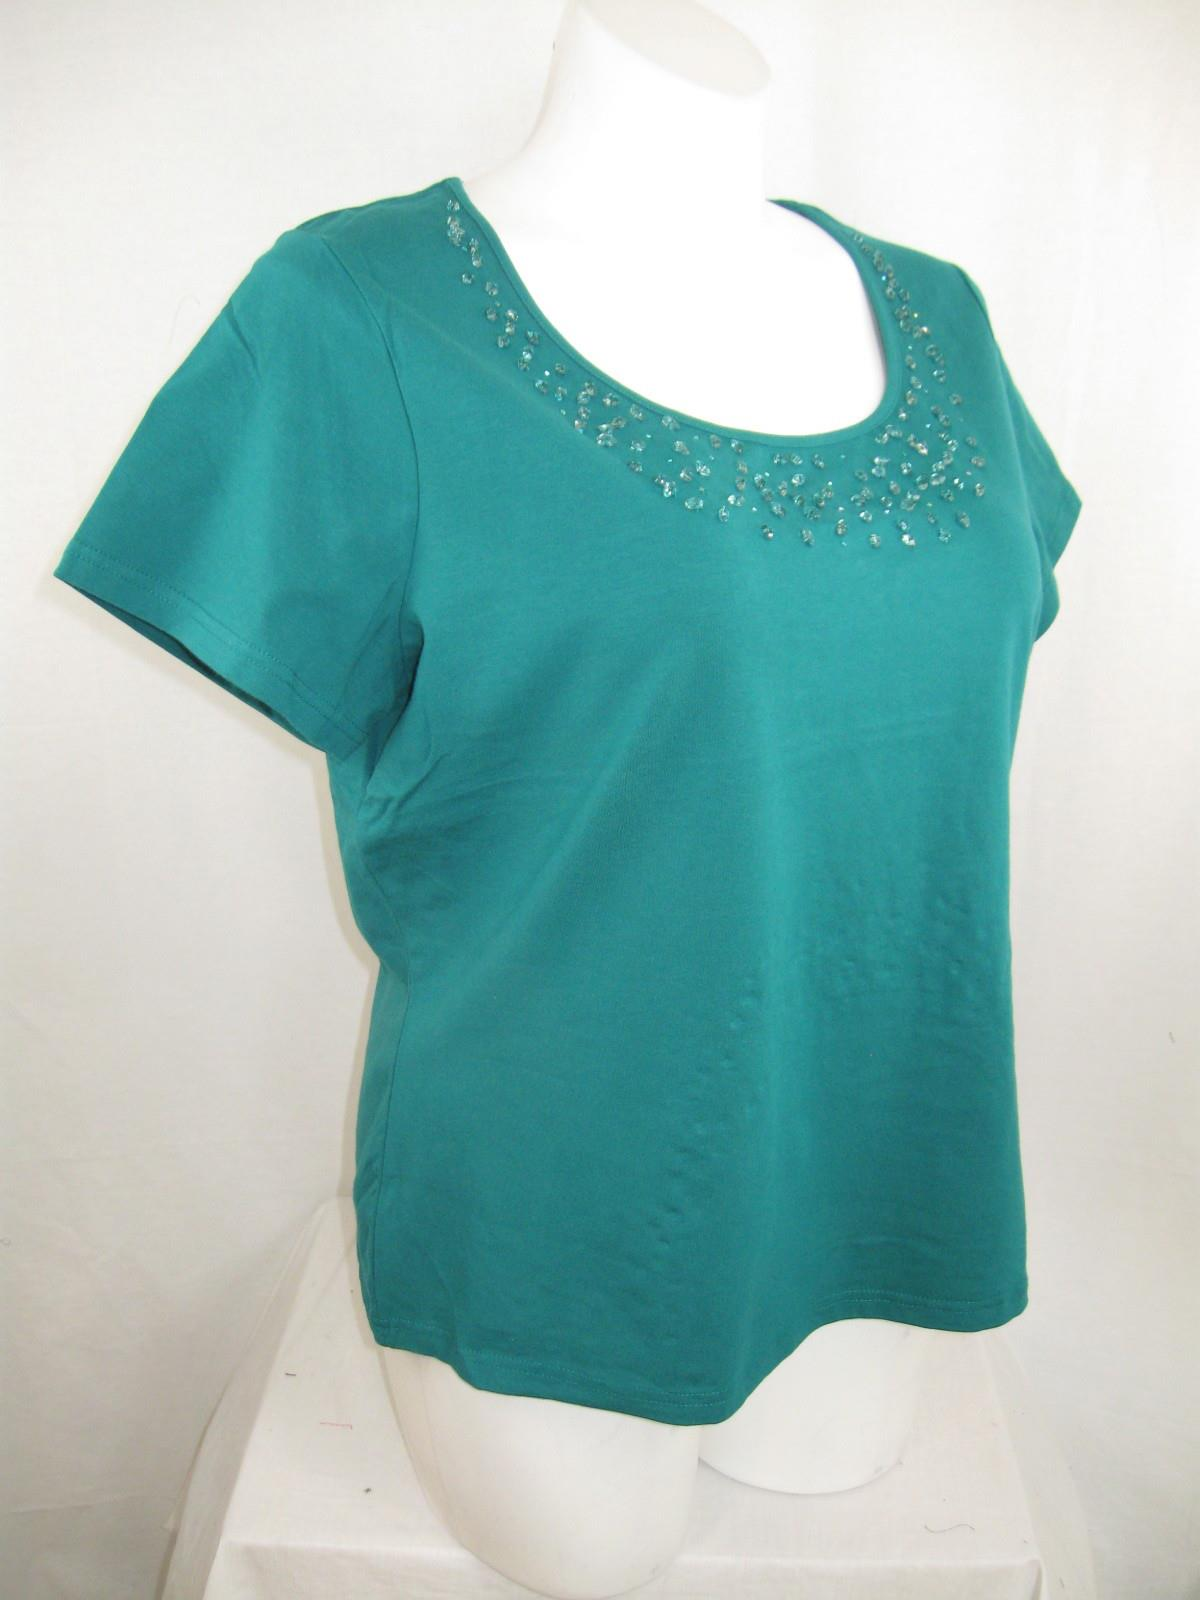 Apostrophe-Woman-Plus-Size-Top-Short-Sleeves-with-Jeweled-Scoop-Neckline